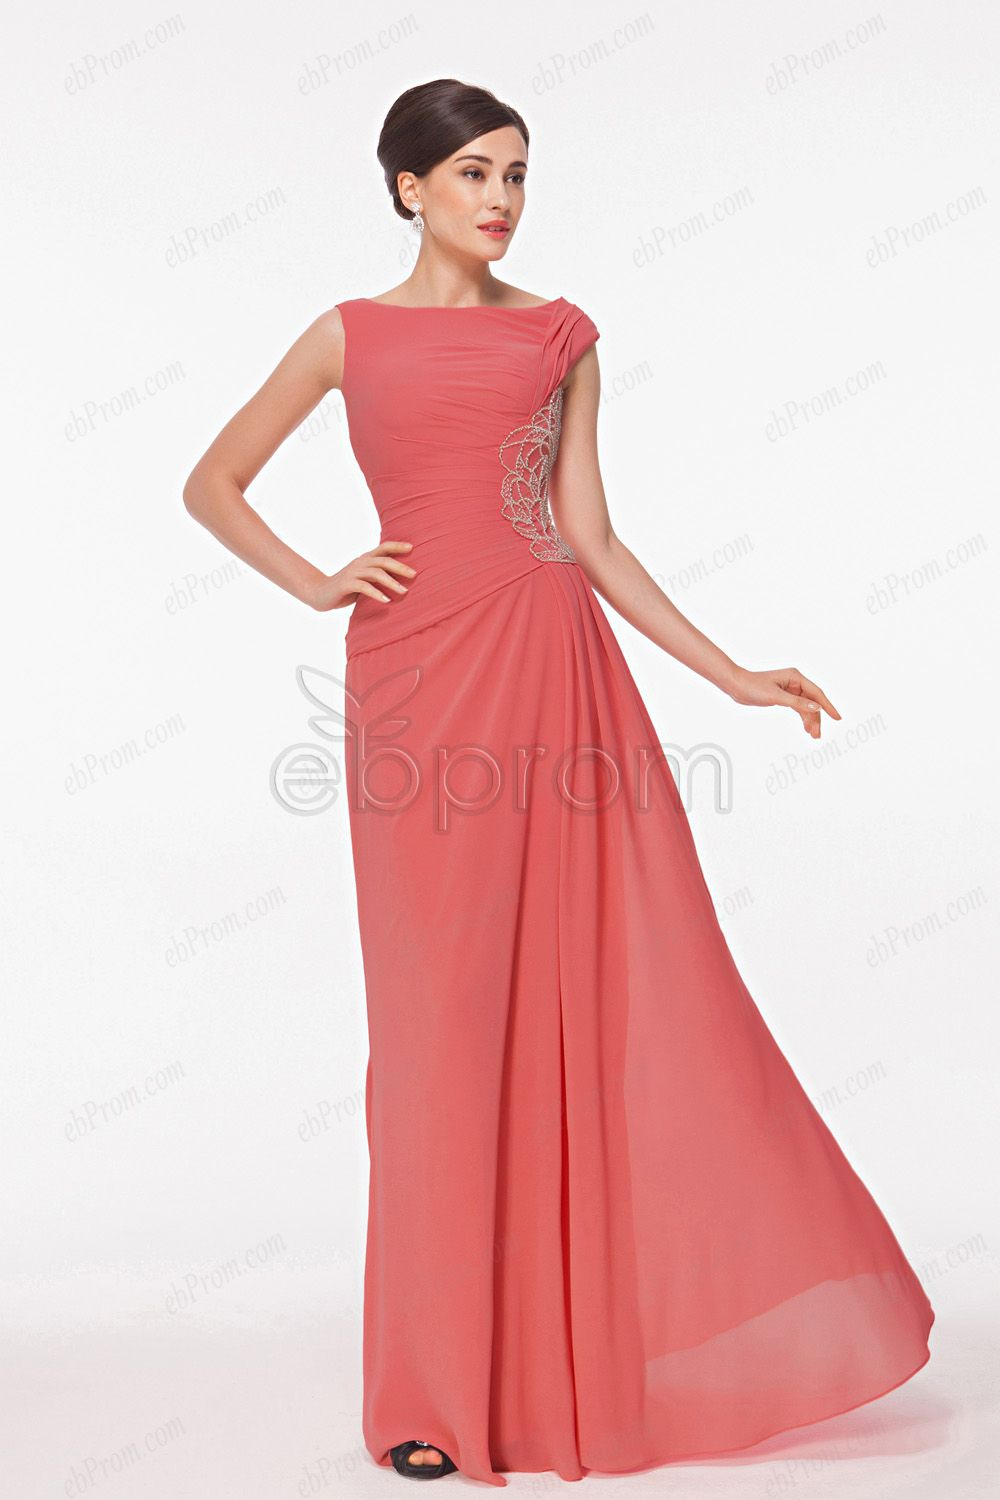 Modest Coral Mother Of The Bride Dresses Coral Bridesmaid Dresses Long Coral Bridesmaid Dresses Dresses